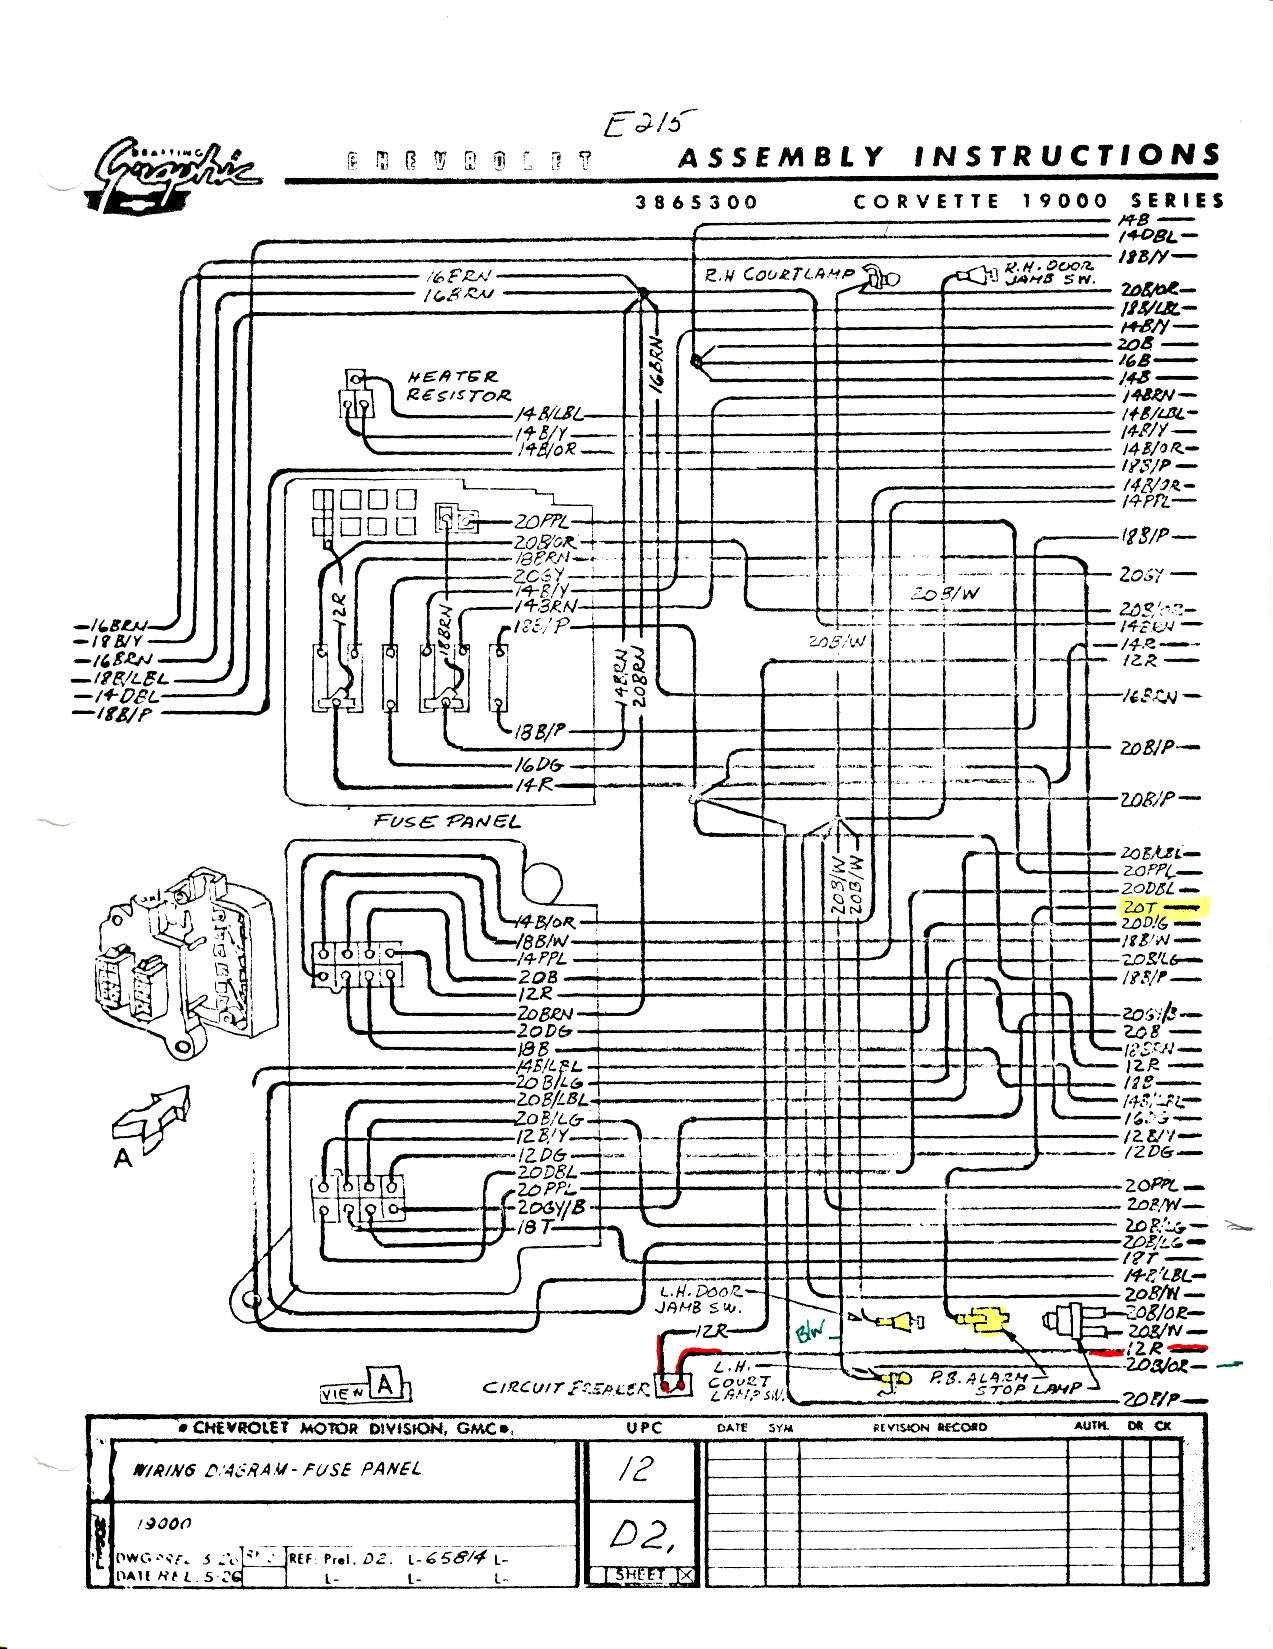 hight resolution of i need a 1965 wiring diagram corvetteforum chevrolet corvette i need a 1965 wiring diagram corvetteforum